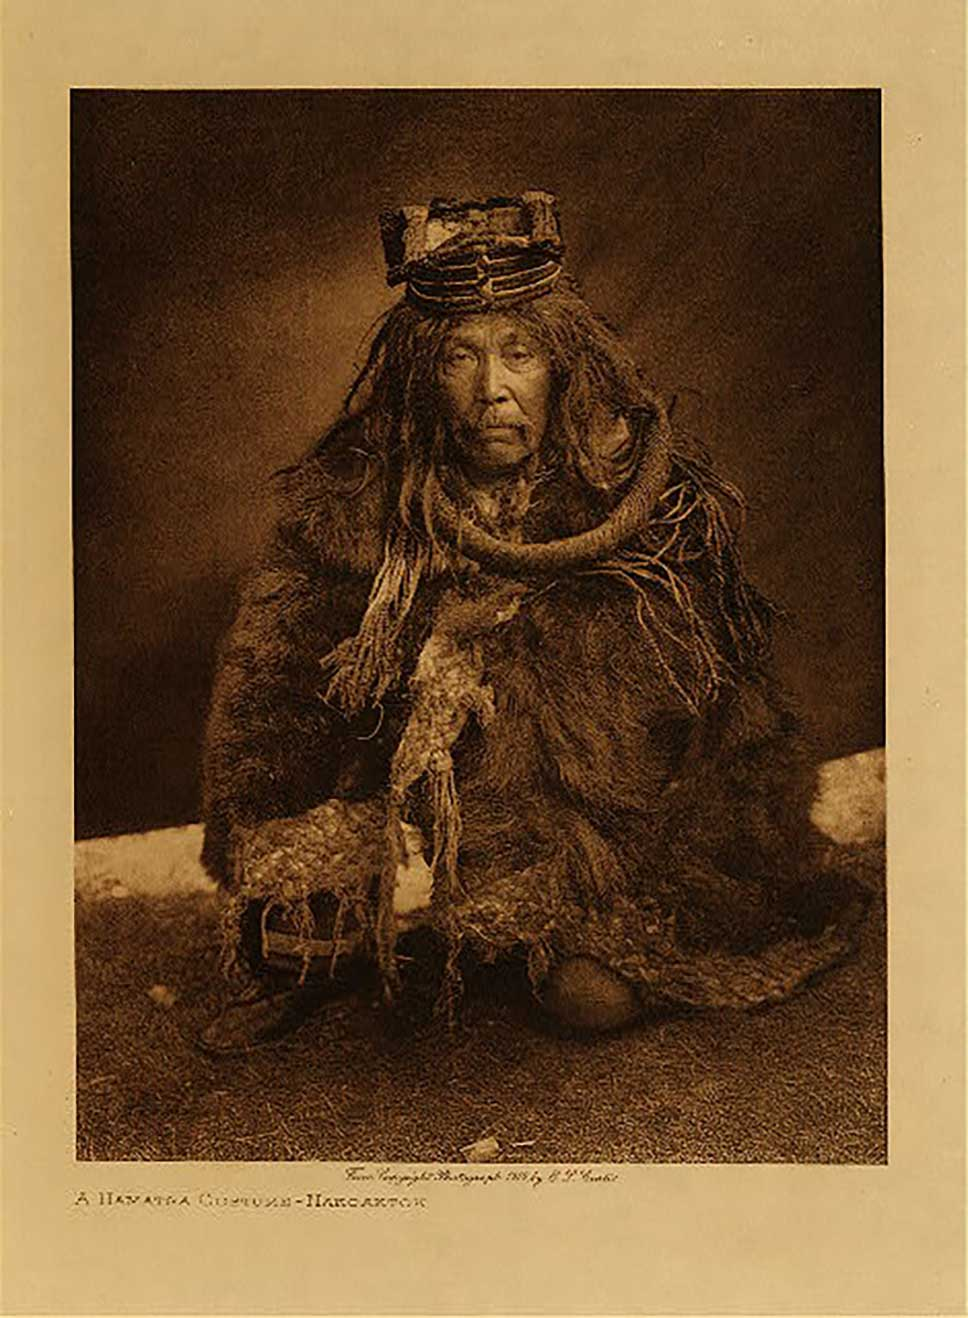 Sepia tone photograph by Edward Curtis of HAMAT´SA DANCER, 1910 in cedar regalia, crouching position, serious expression